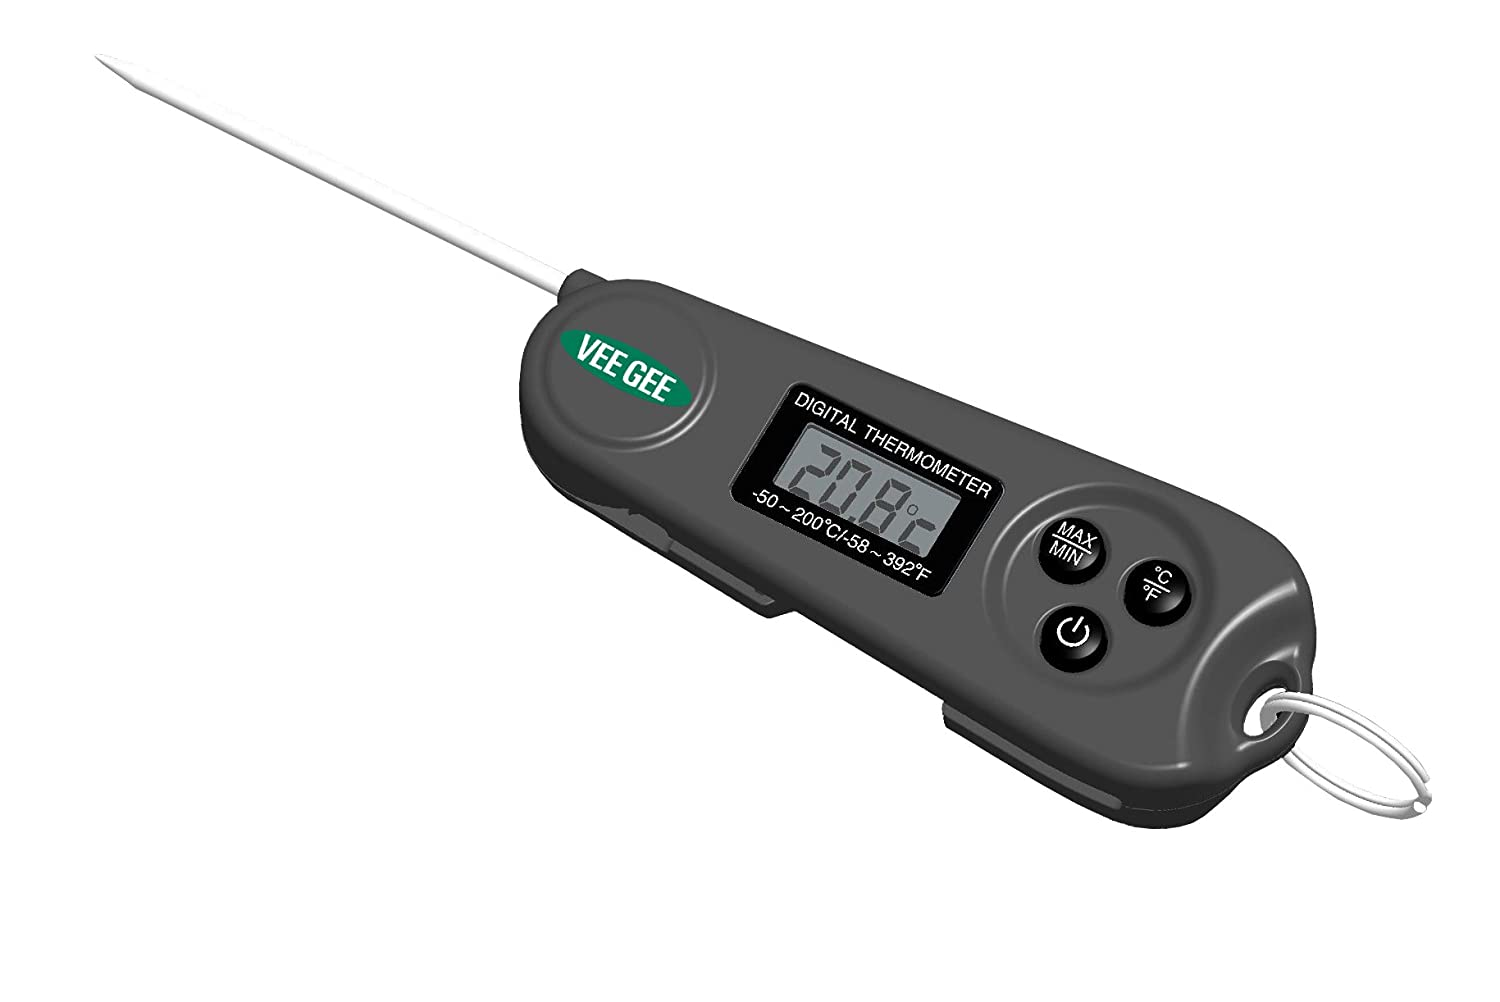 Vee Gee Scientific 83410 Minifold Digital MinMax Thermometer, -50°C to +200 °C, -58°F to +392°F Degree C, Plastic; Stainless Steel Stem, Charcoal Grey